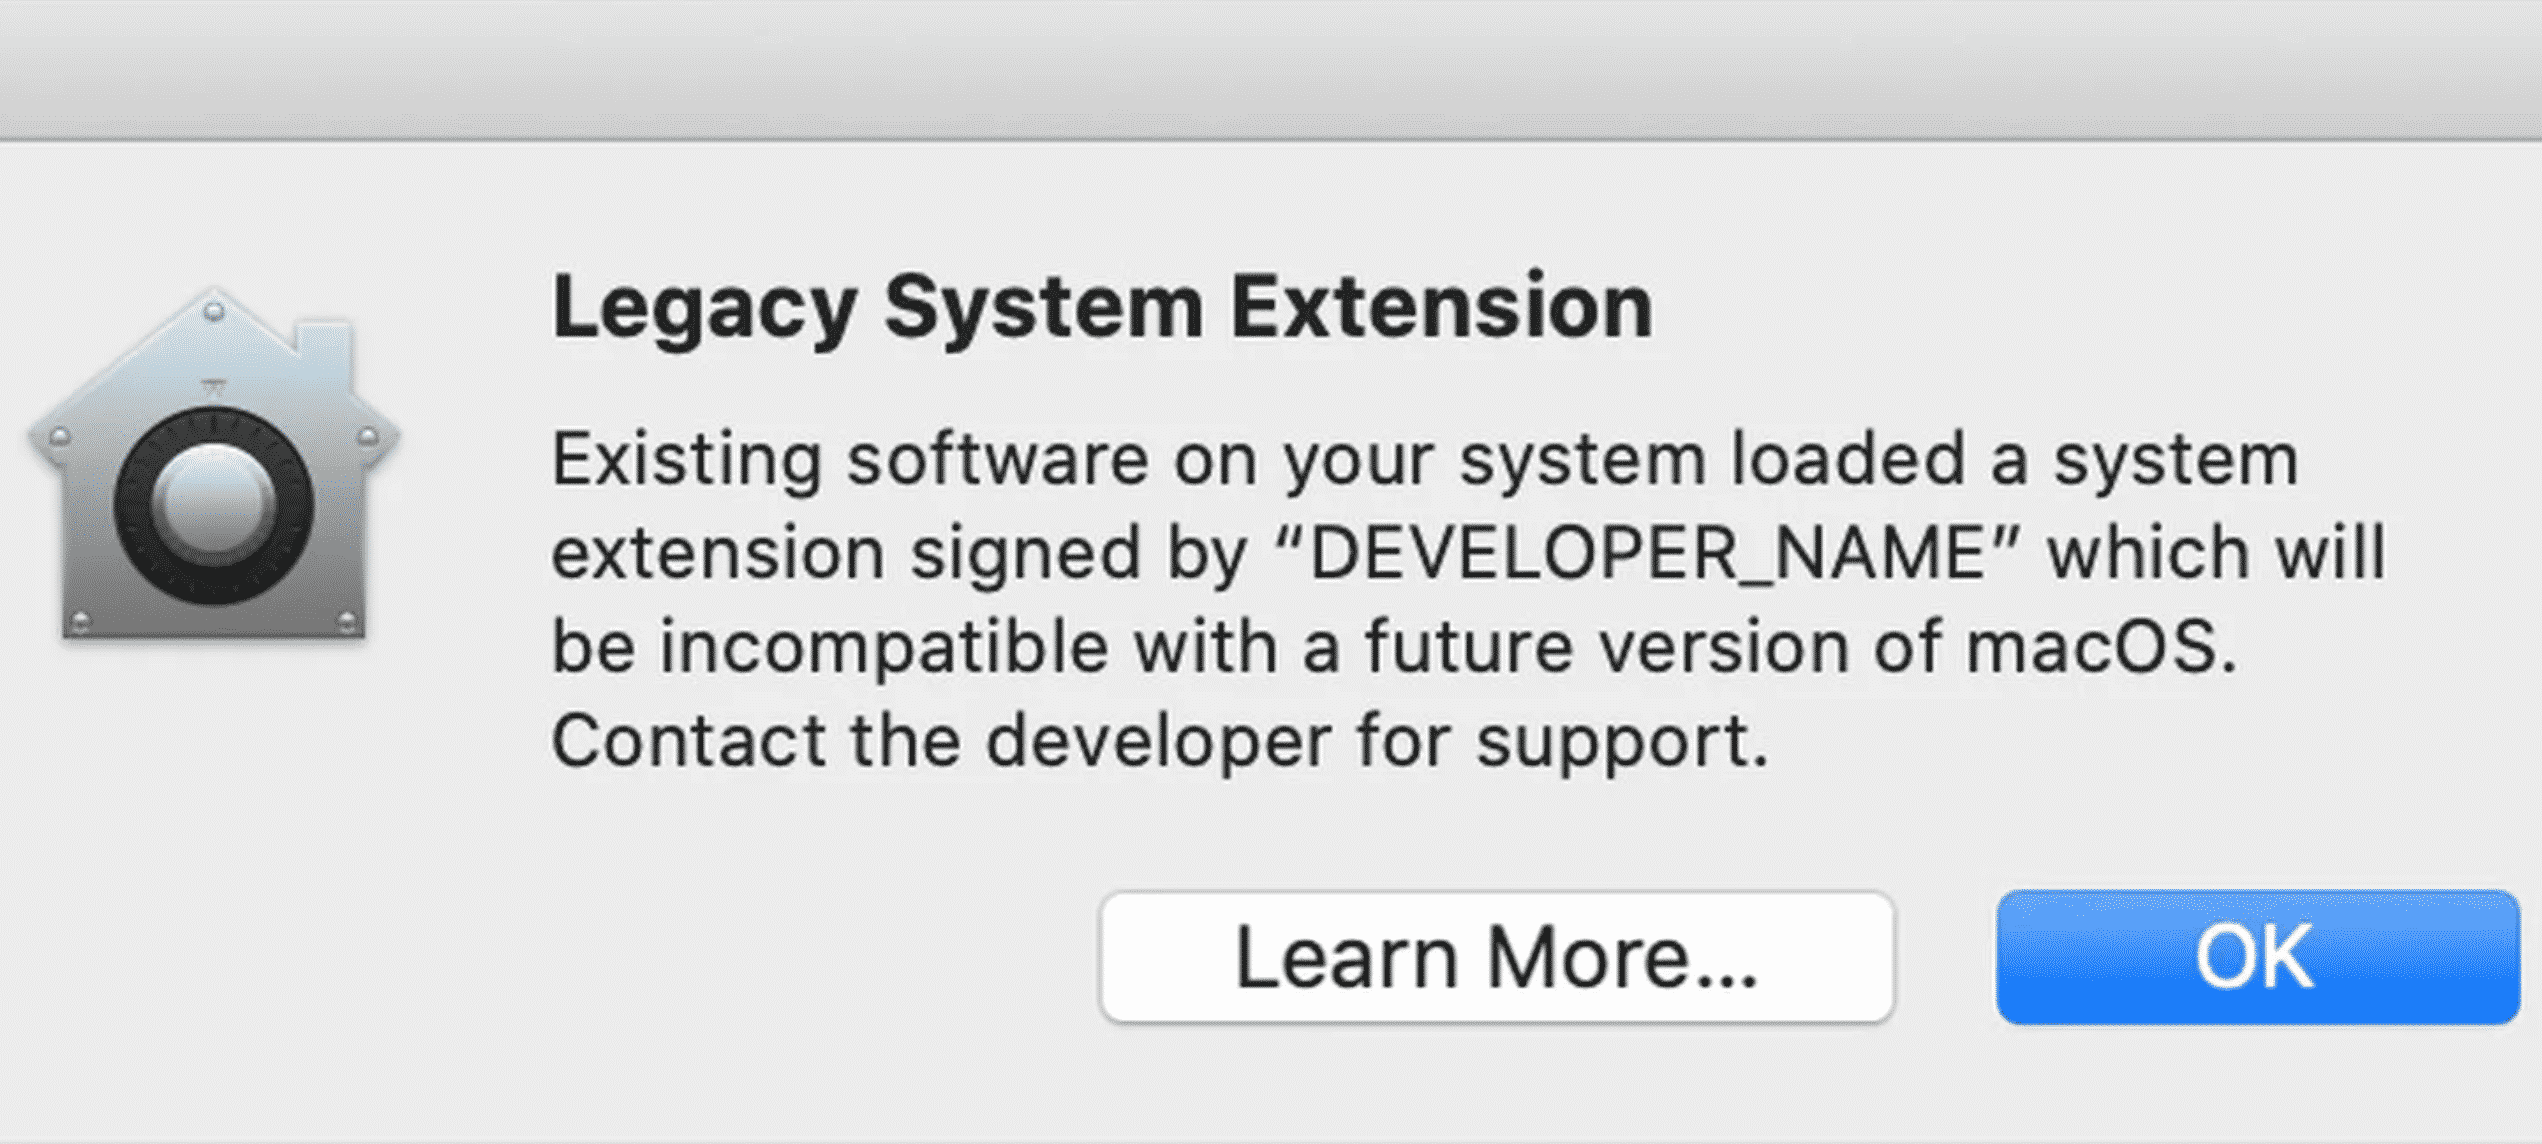 Legacy System Extensions